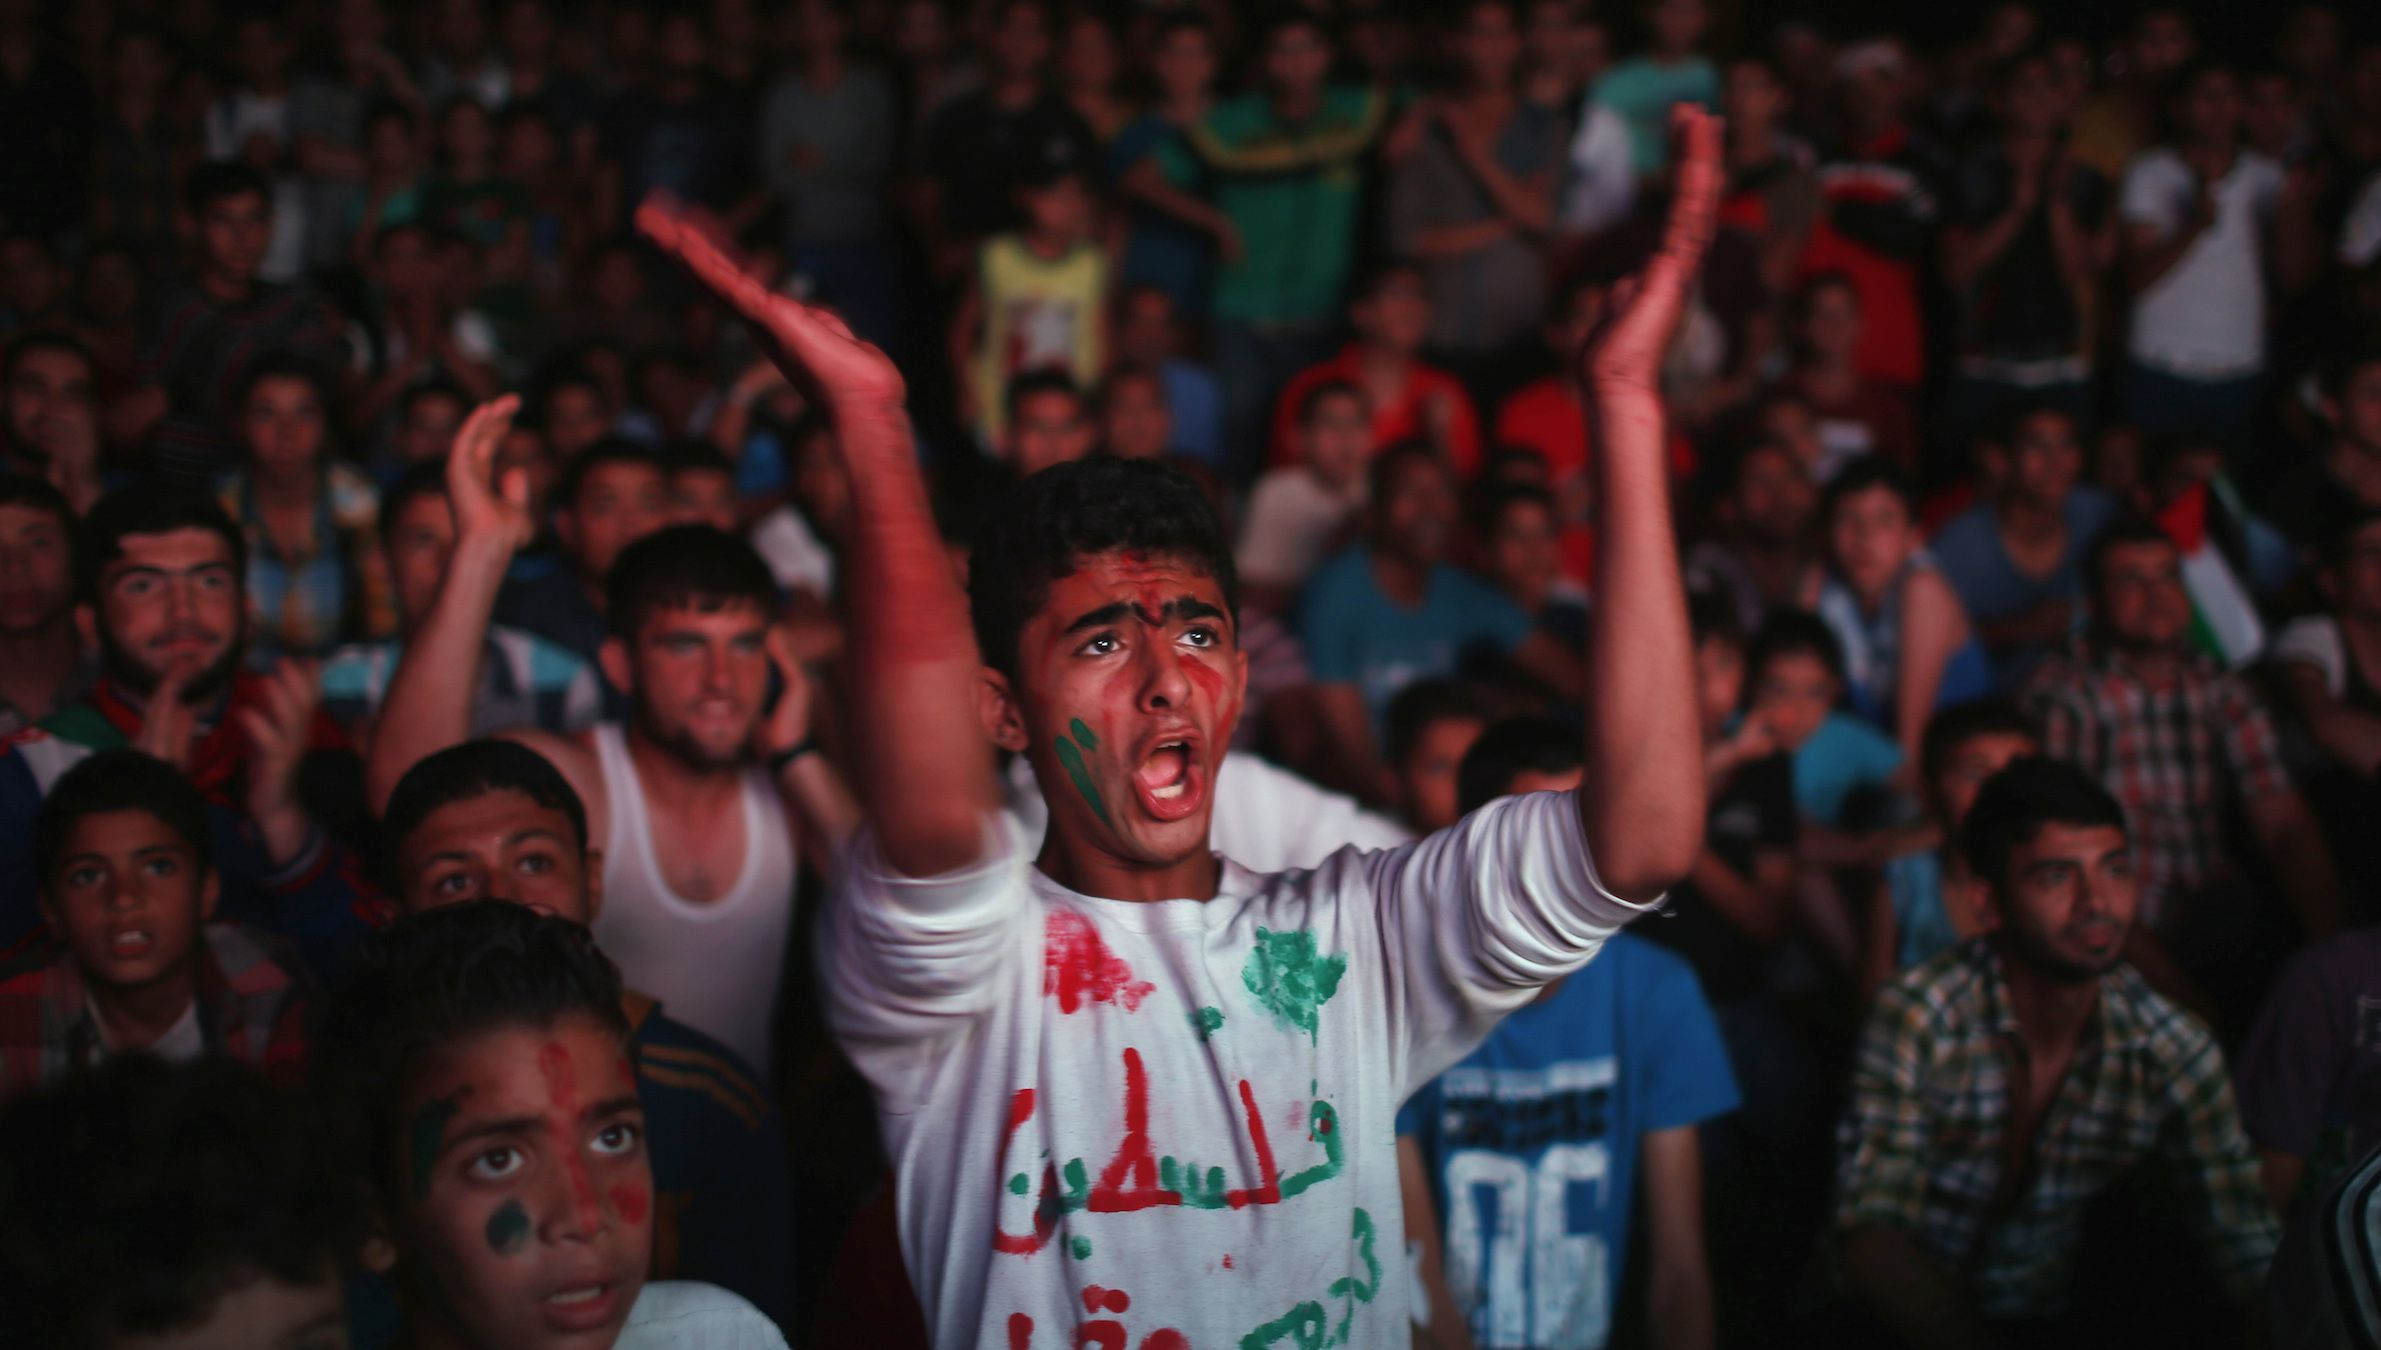 Palestinians cheer as they watch the soccer match between their national team and Philippines on large screens during the AFC Cup Final, in Gaza City May 30, 2014, REUTERS/Mohammed Salem (GAZA - Tags: SPORT SOCIETY SOCCER TPX IMAGES OF THE DAY) - RTR3RKGA